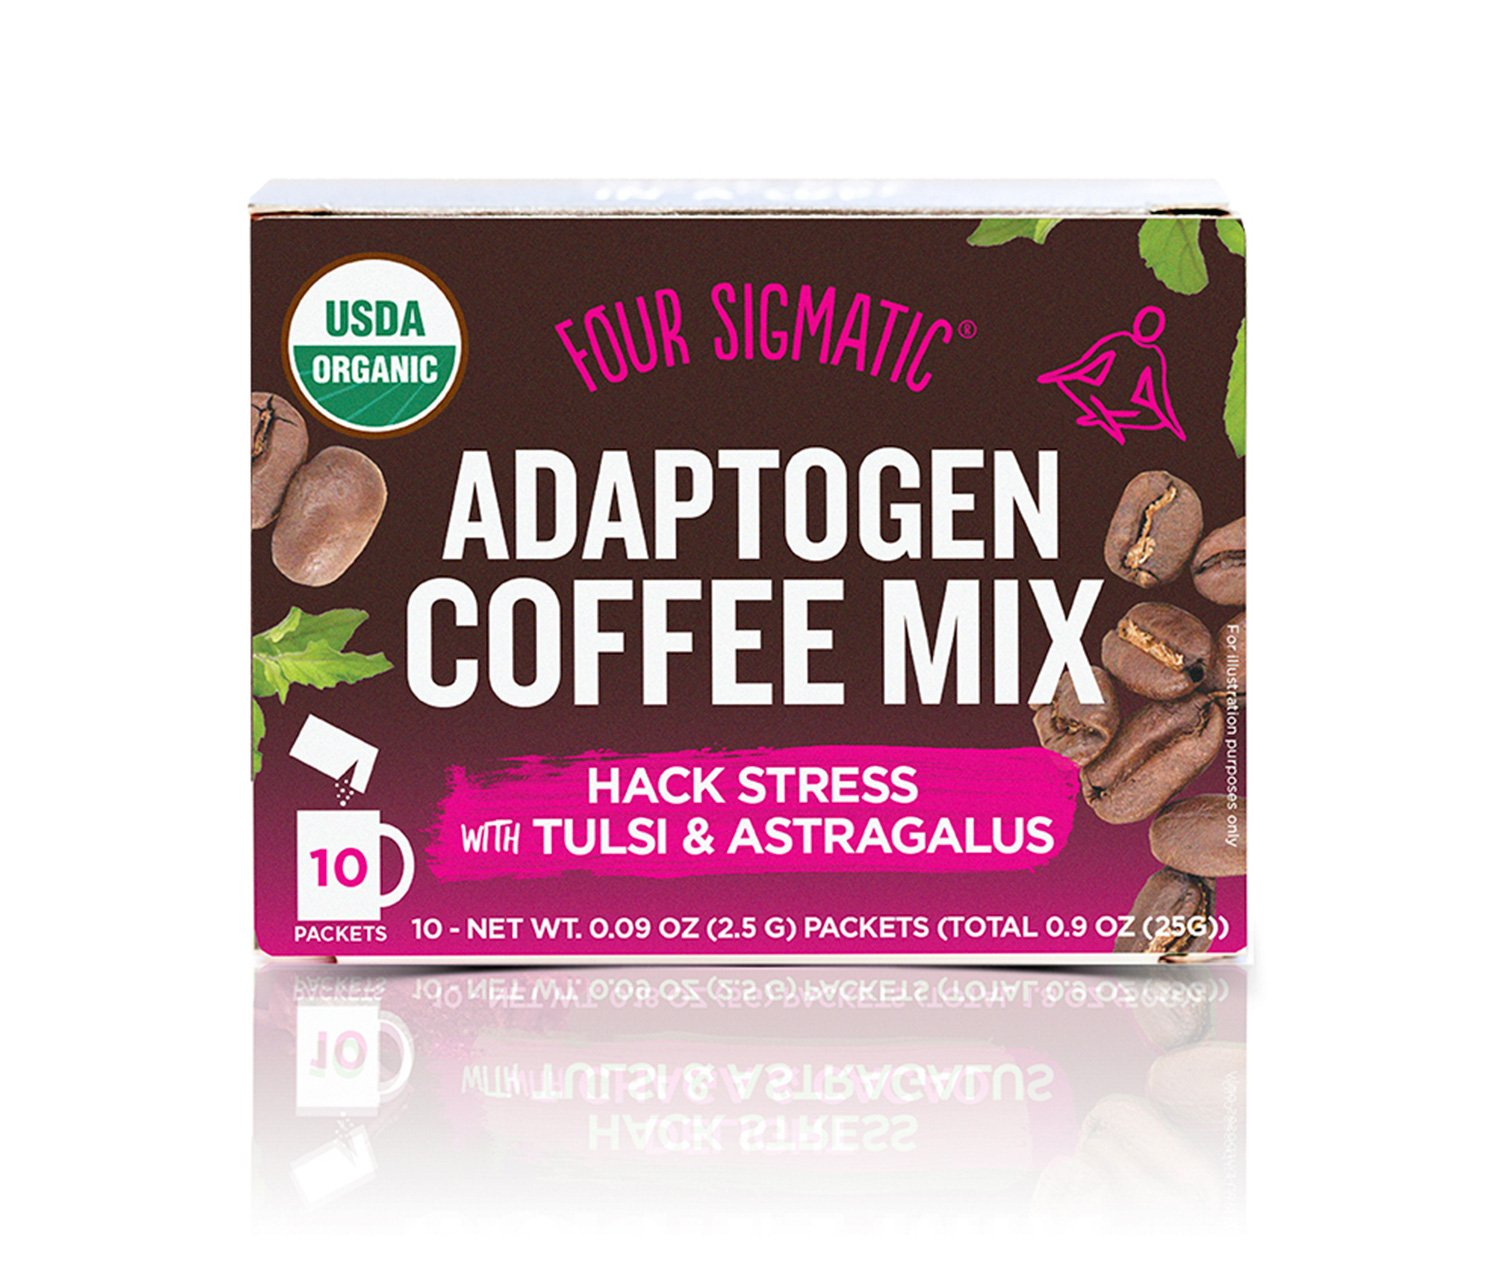 Four Sigmatic Adaptogen Coffee, USDA Organic Coffee with Tulsi and Astragalus, Hack Stress, Organic, Vegan, Paleo, 10 Count